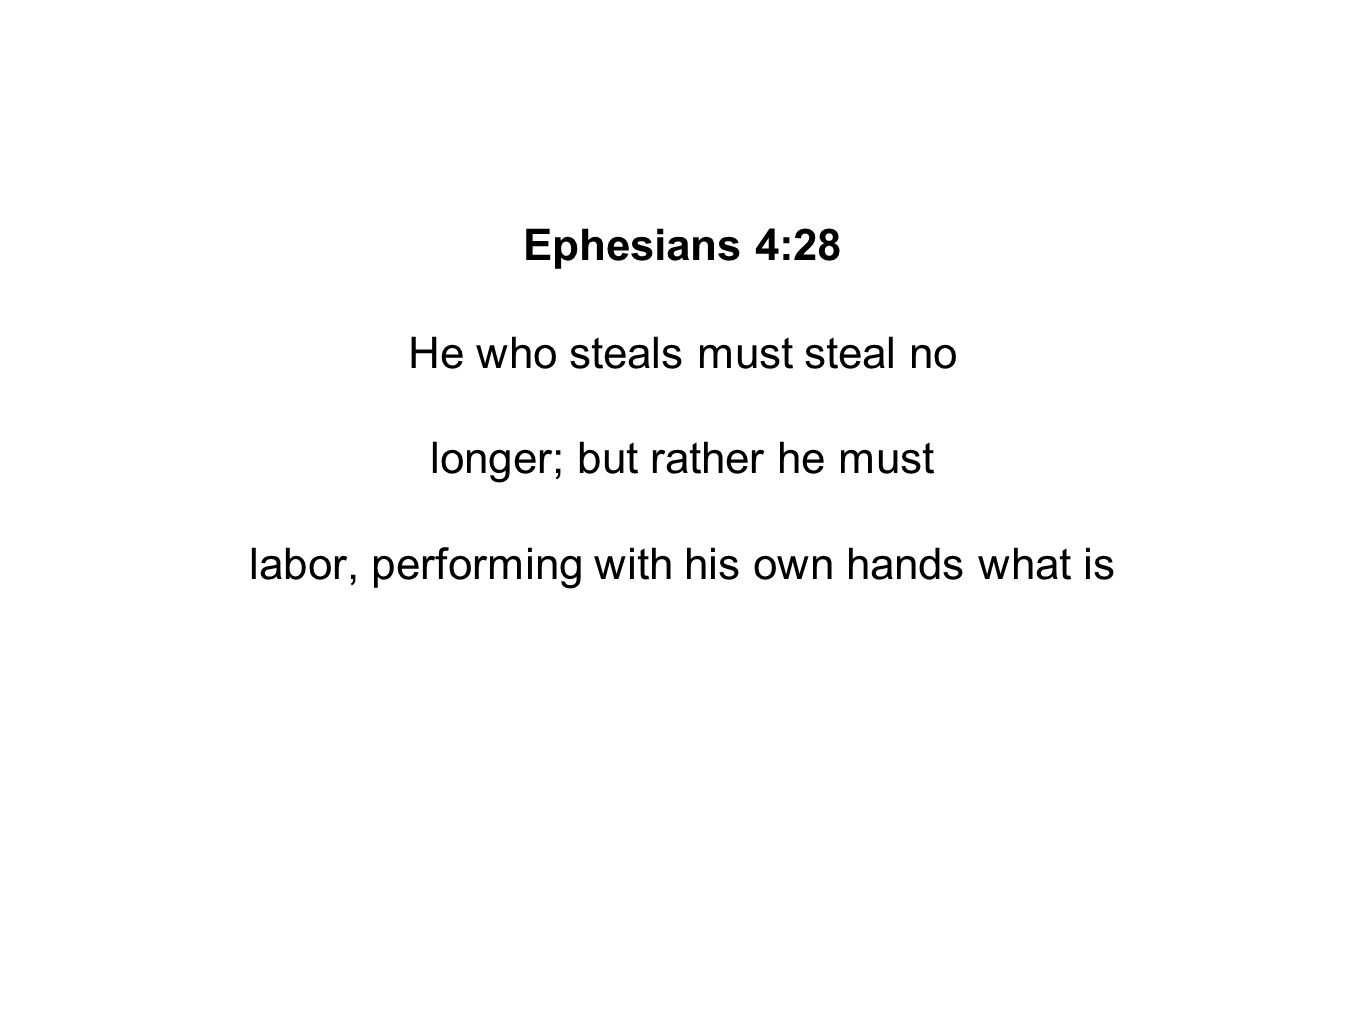 Ephesians 4:28 He who steals must steal no longer; but rather he must labor, performing with his own hands what is